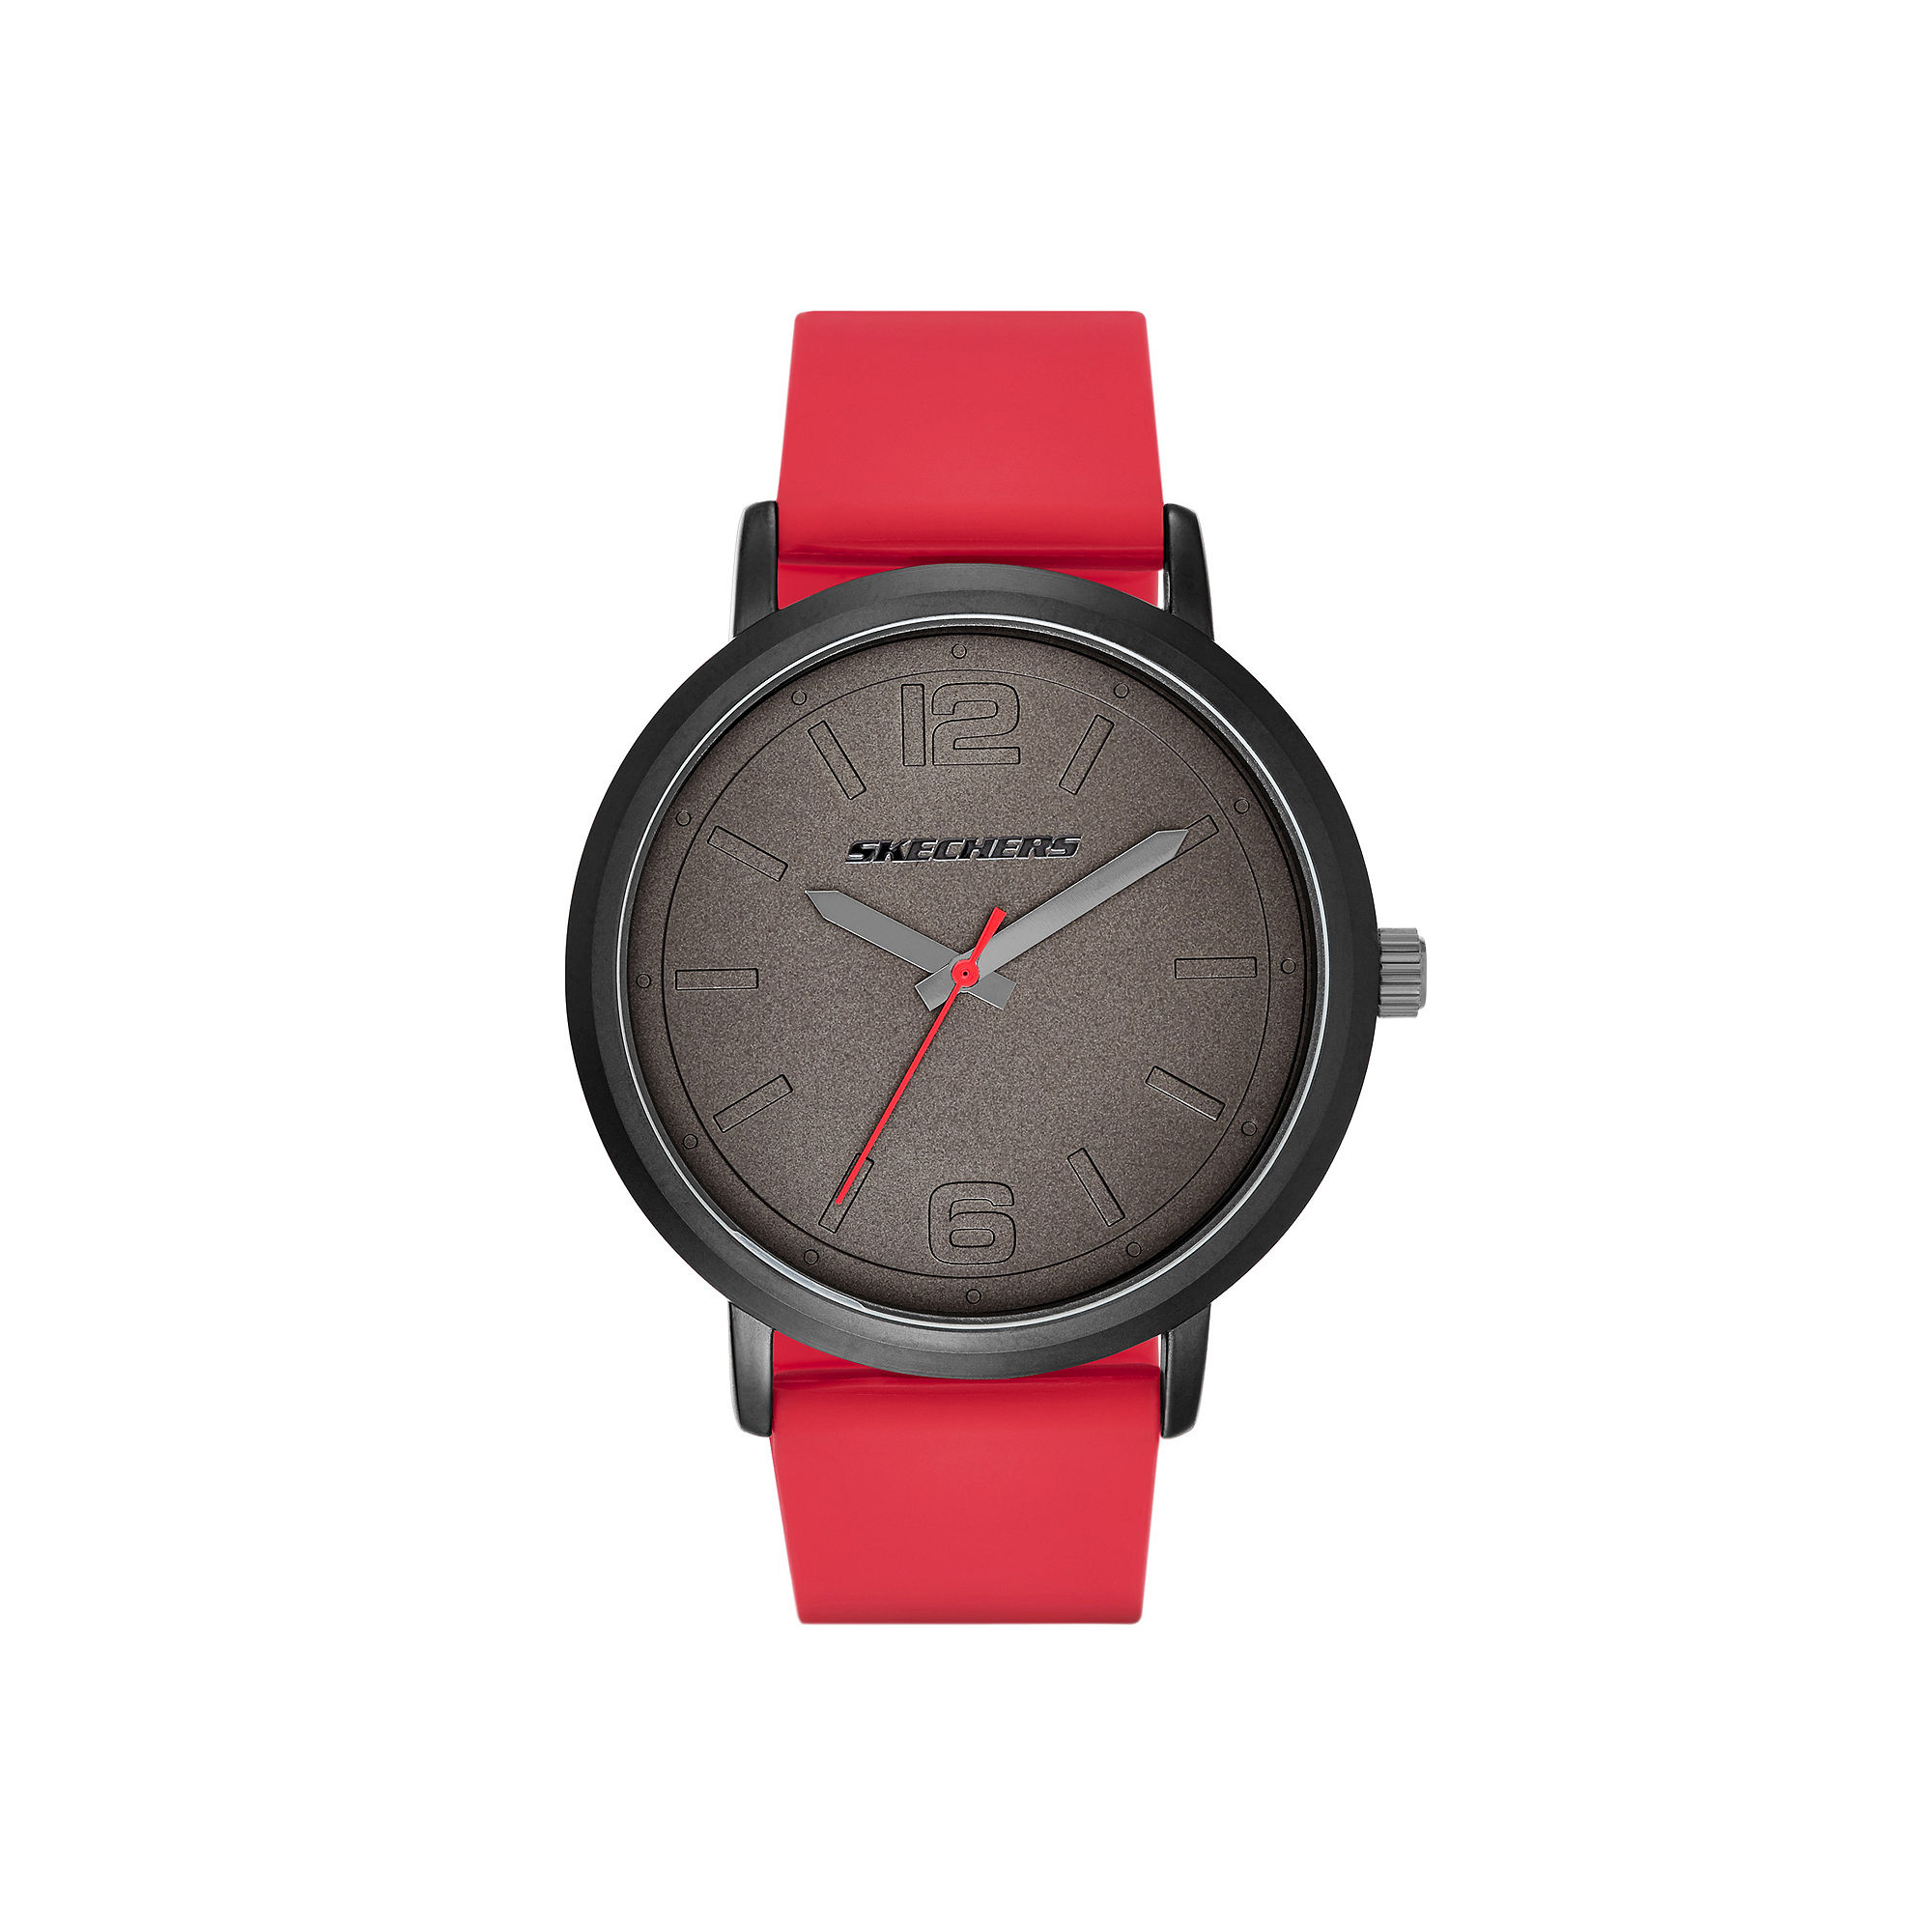 Skechers Mens Black and Red Silicone Strap Analog Watch